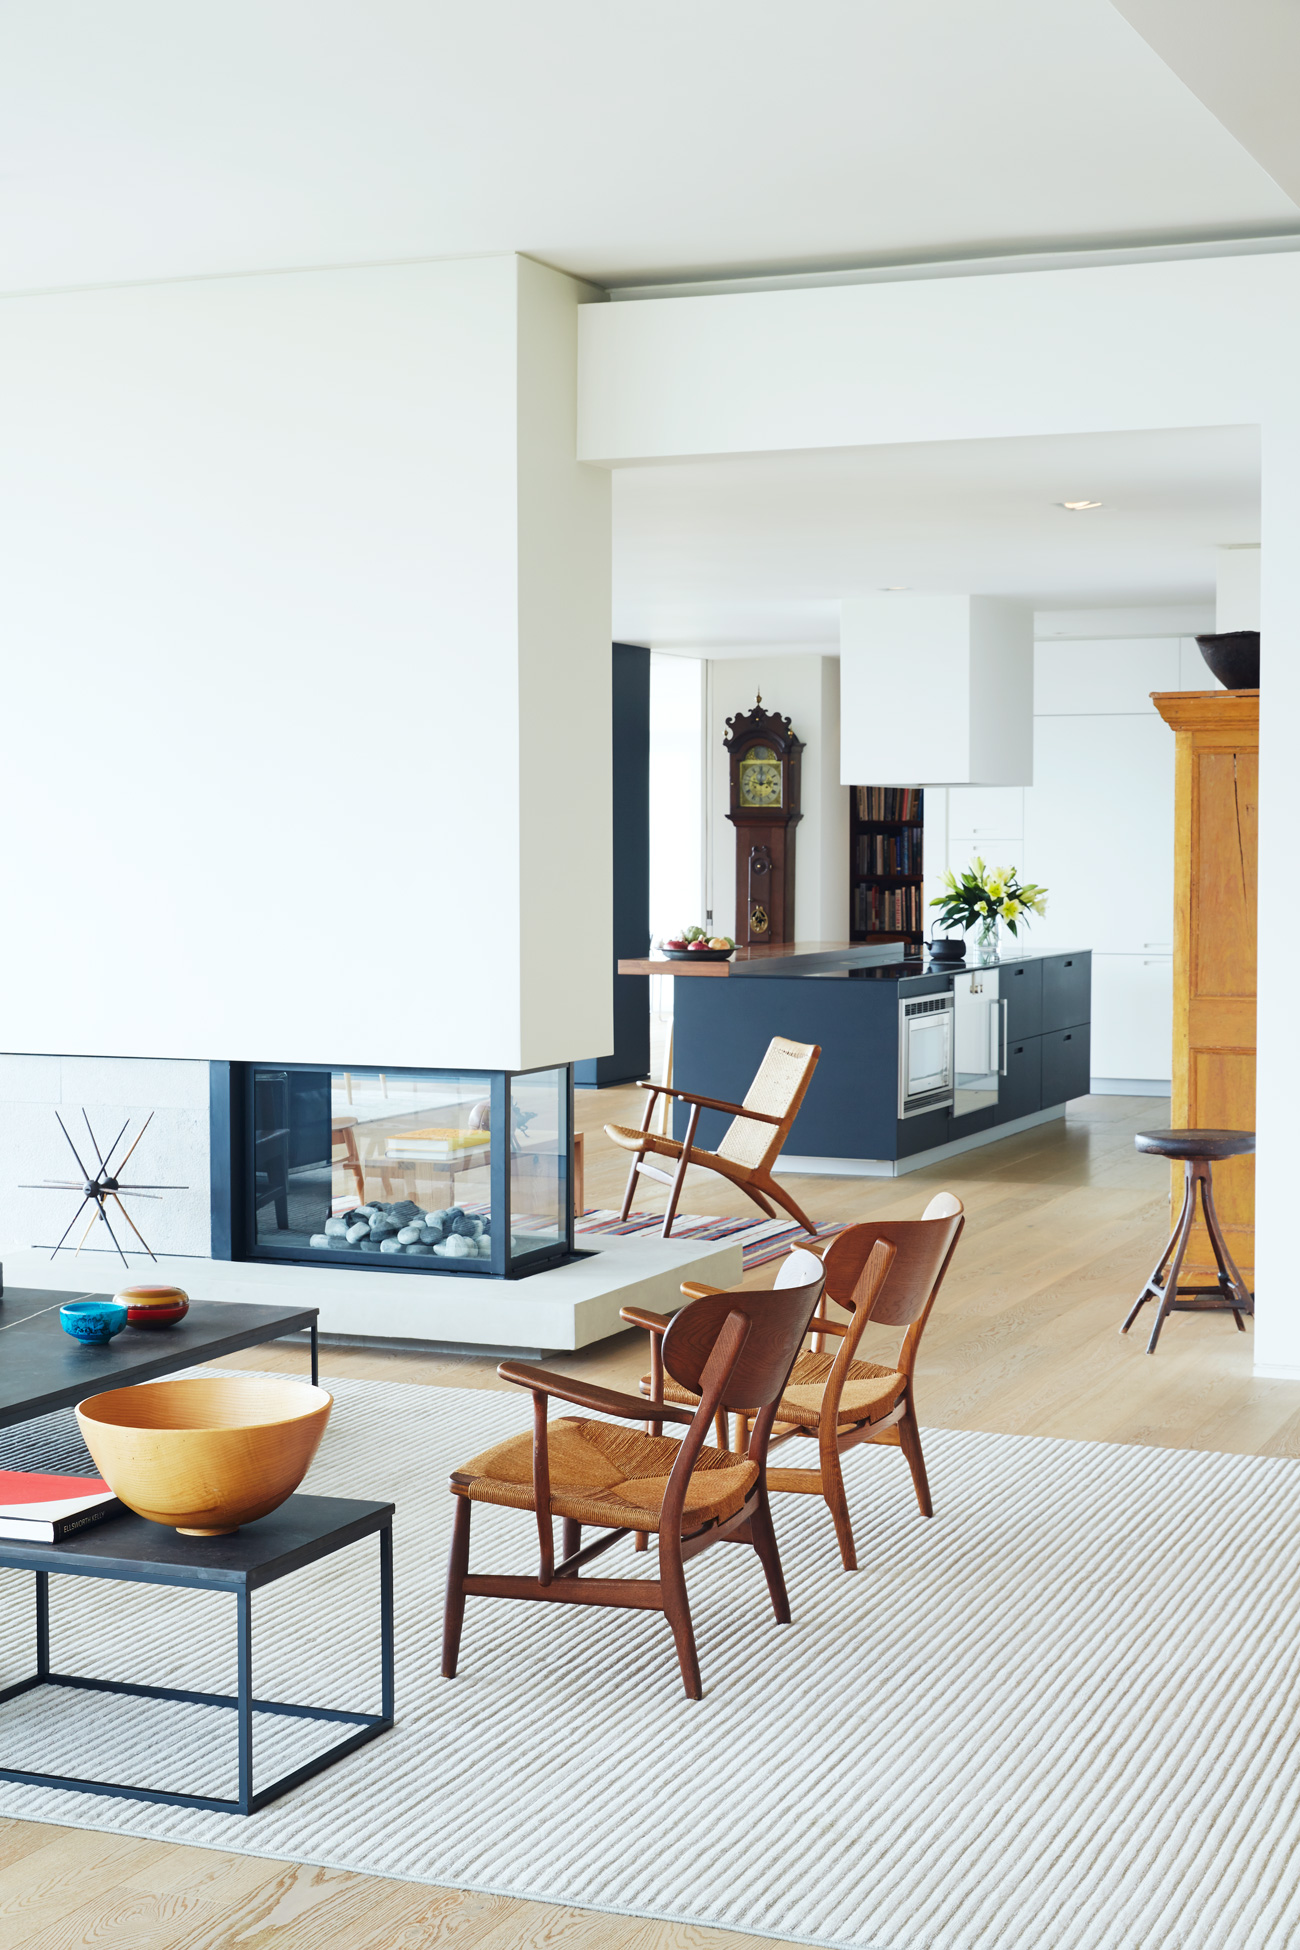 A dropped ceiling over the kitchen conceals the HVAC and trimless recessed lighting. It also makes the living room feel more grand. Engineered oak flooring throughout by Moncer. Vintage Hans Wegner chairs; rug from Elte.